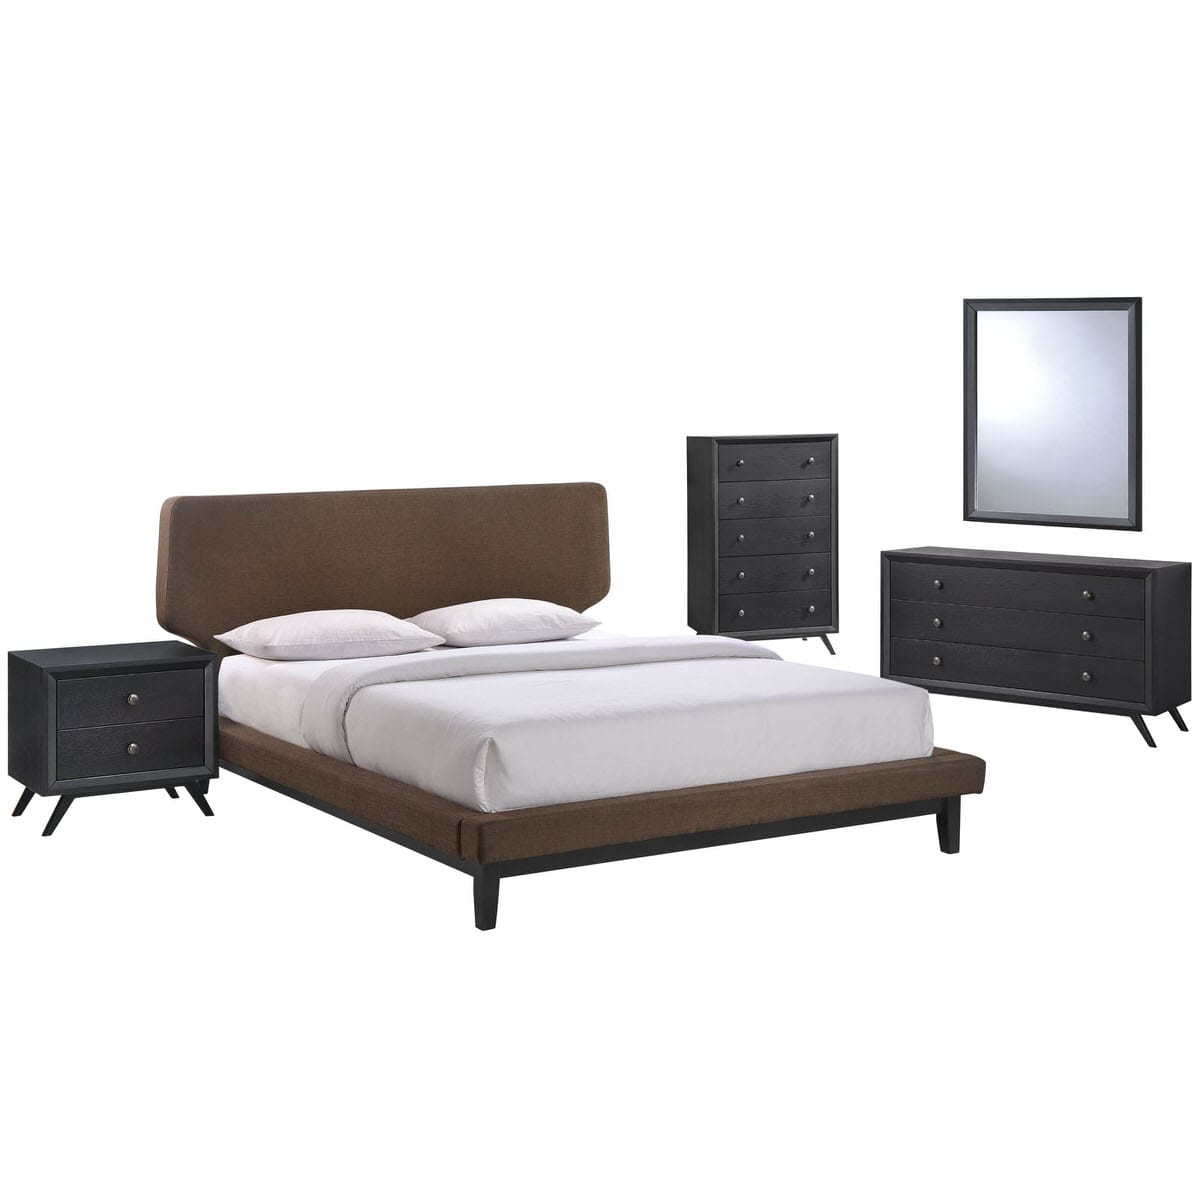 Bethany 5 Piece Queen Bedroom Set Black Brown 1 By Modern Living